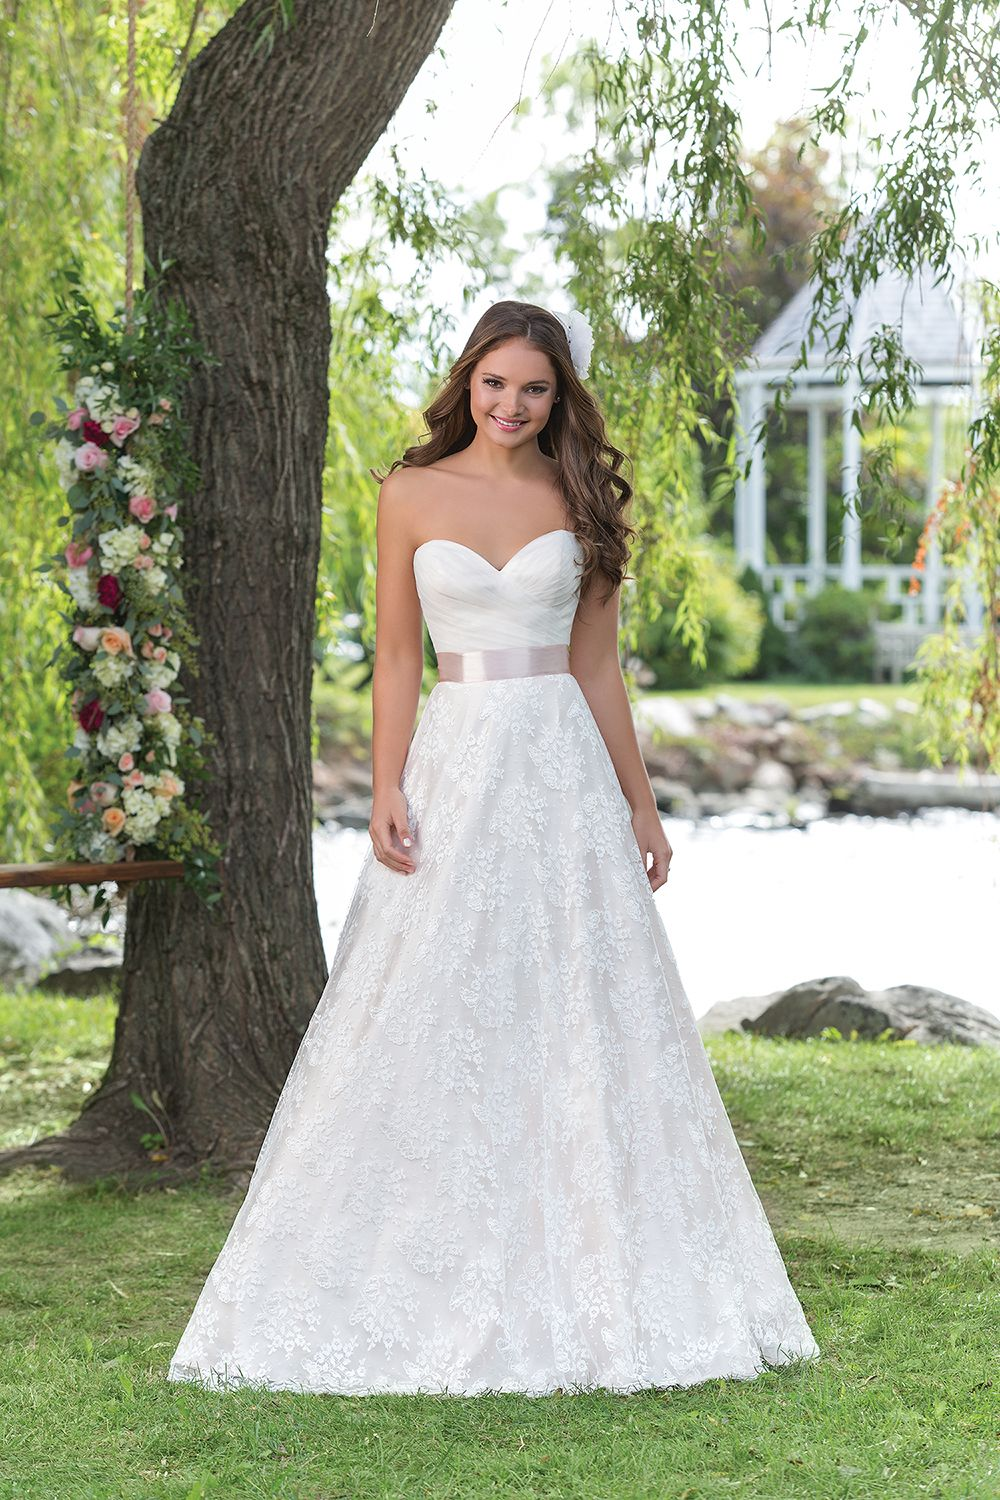 Sweetheart Gowns Style 6160: A sweetheart A-line wedding gown with a ...